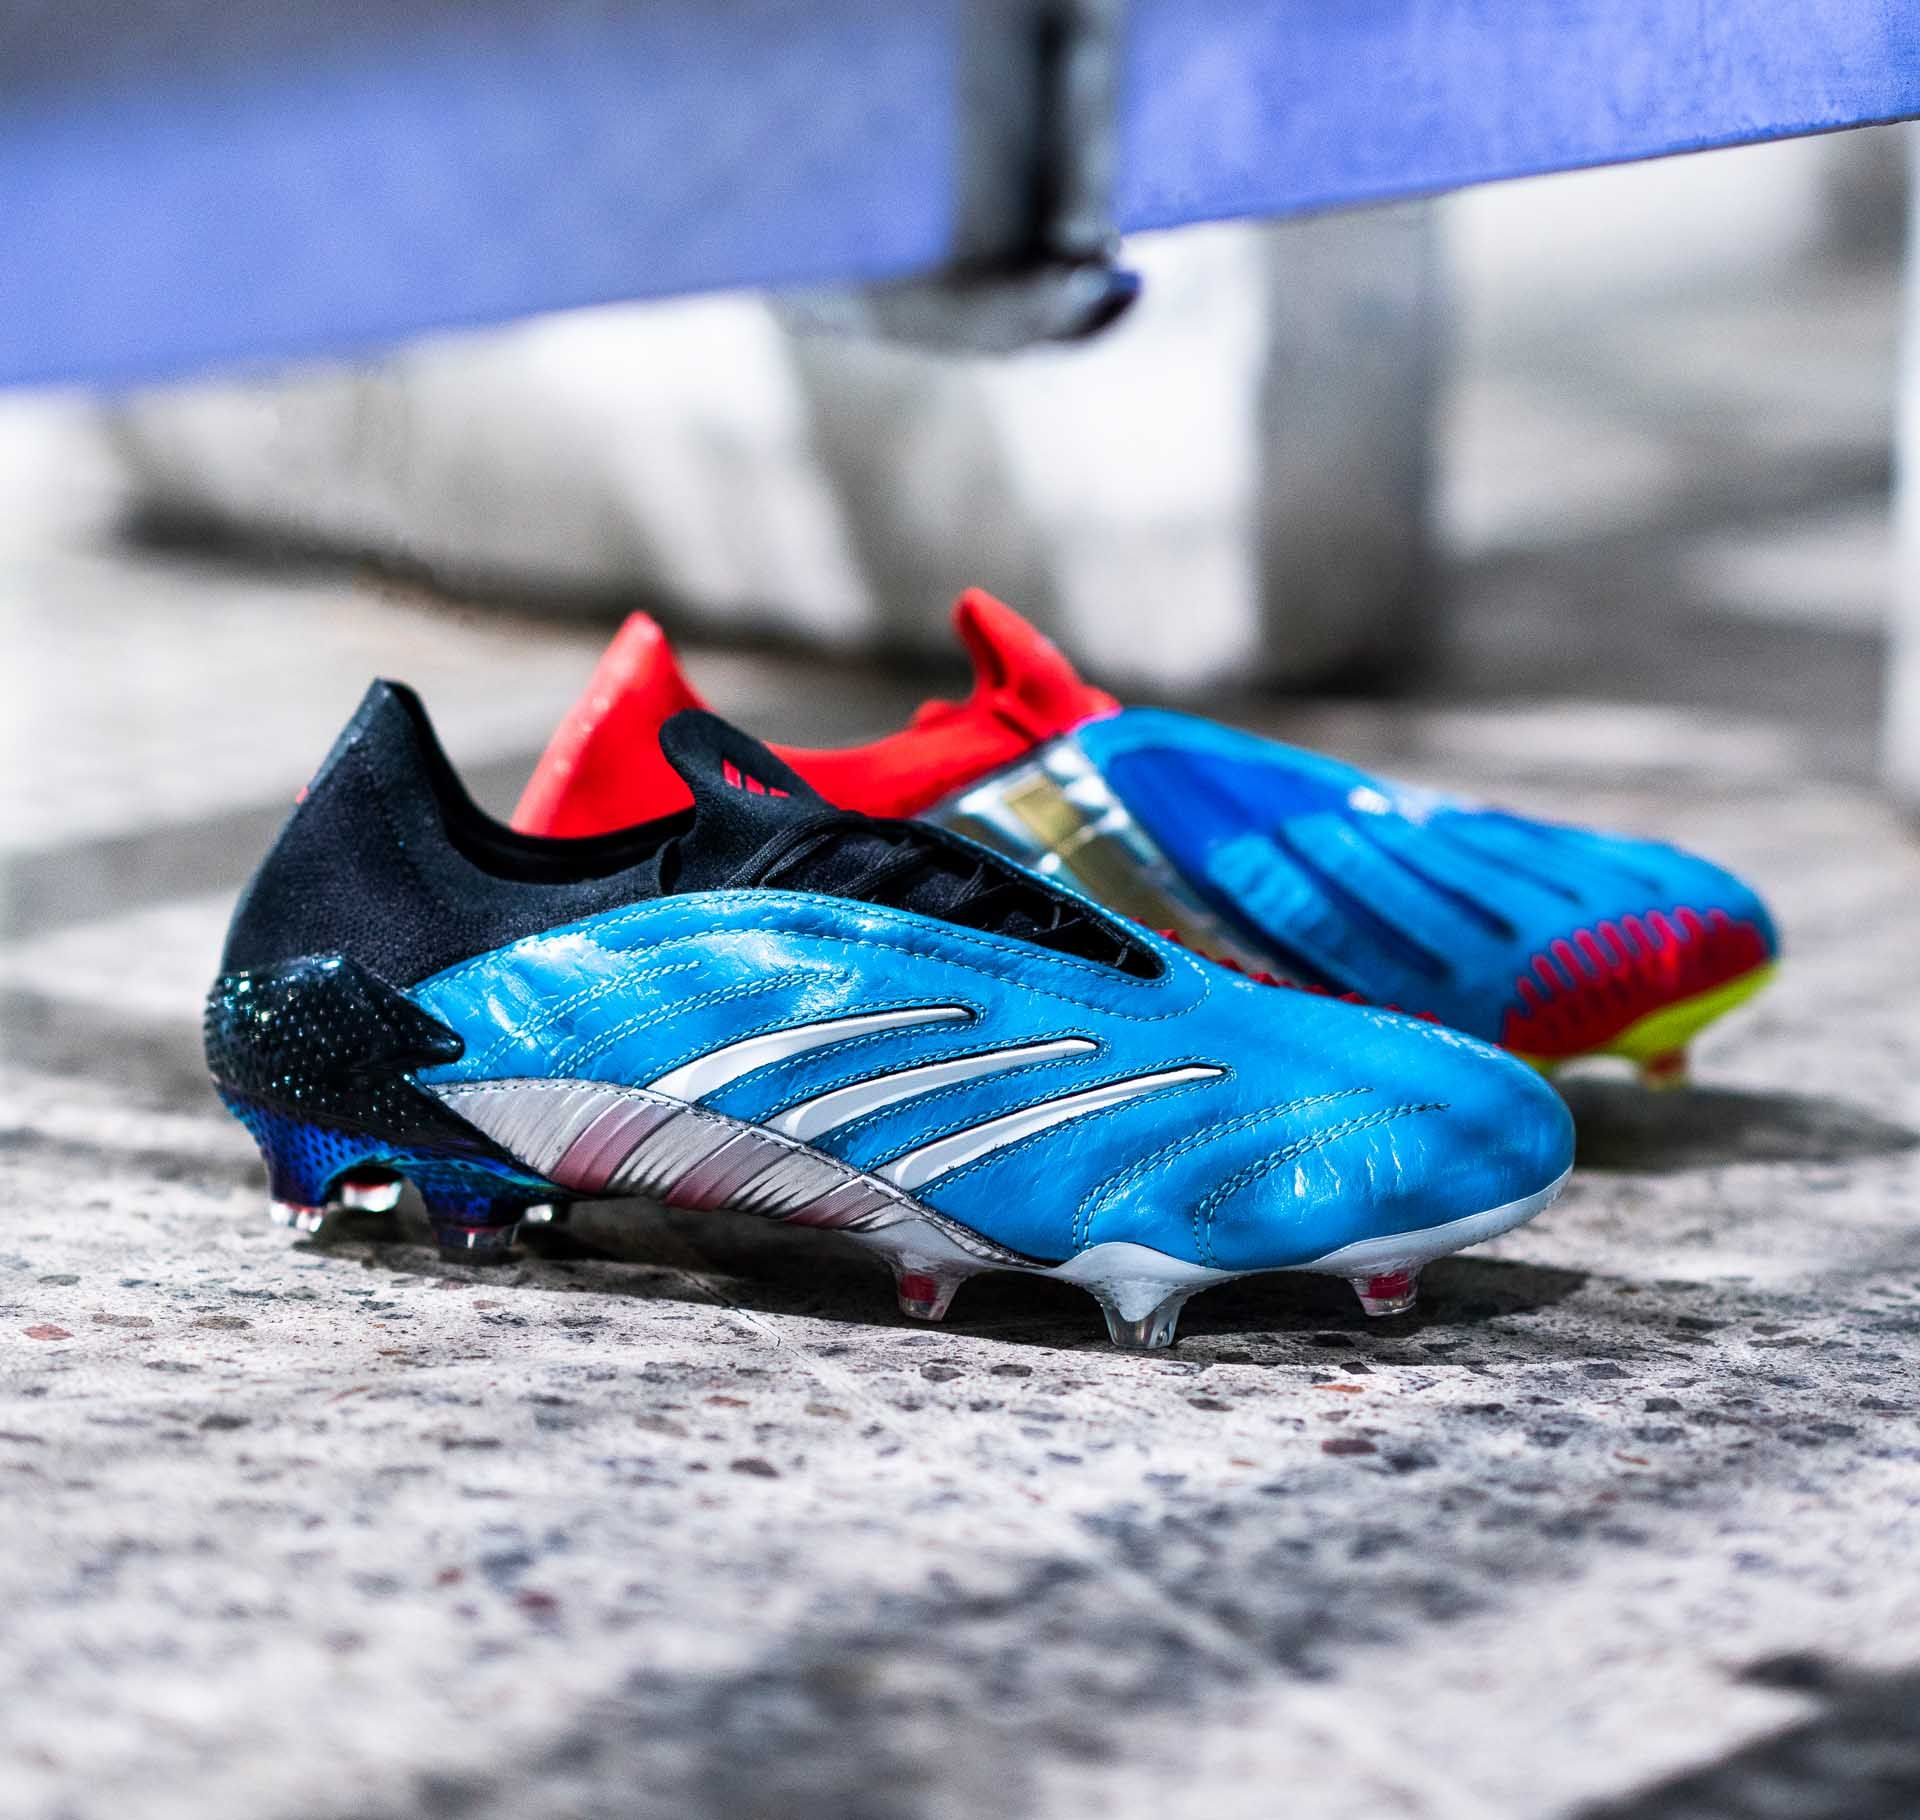 Adidas Launch The Special Edition Predator Archive Mutator Boots Soccerbible In 2020 Predator Boots Adidas Predator Football Boots